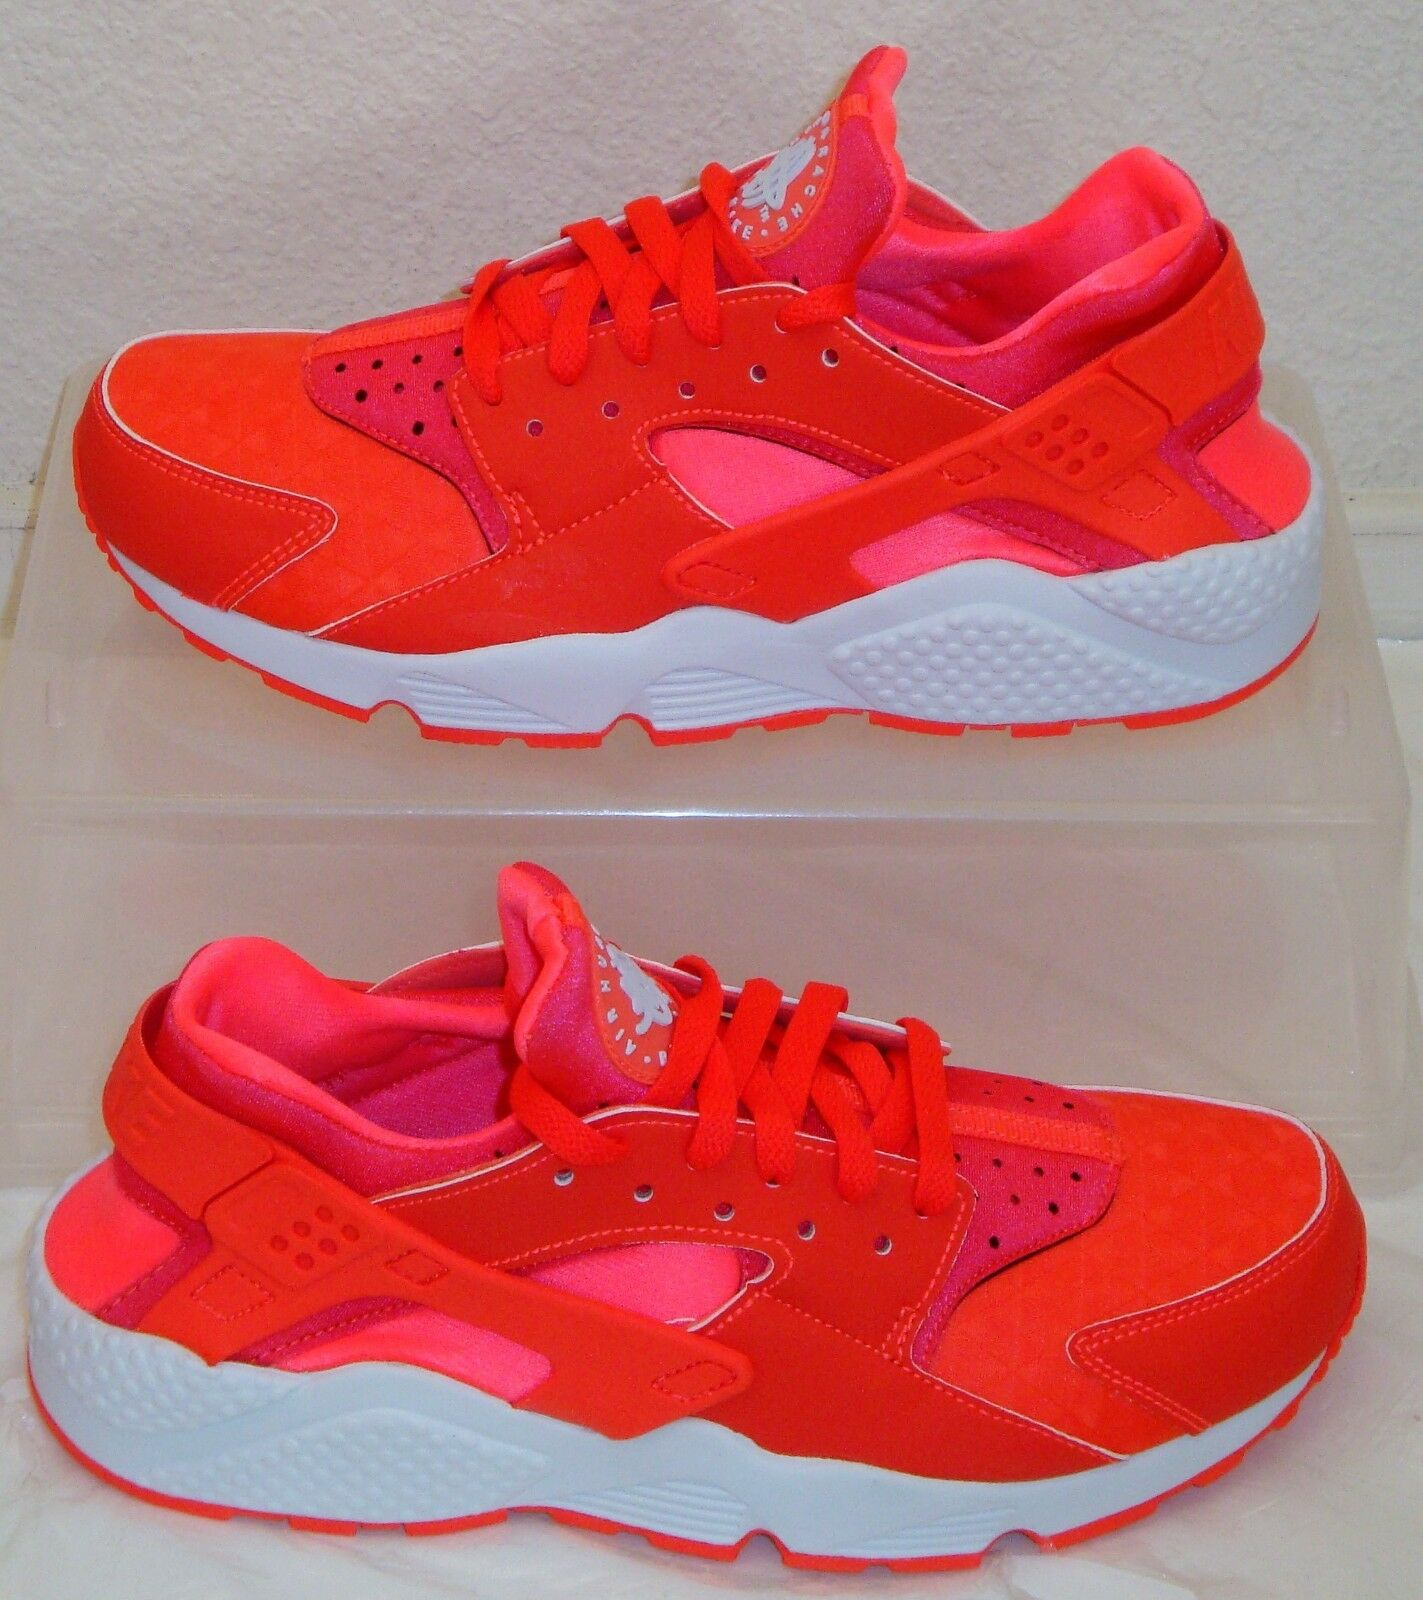 cheap for discount 3e187 dfdb6 Nike Nike Nike Air Huarache Run Crimson Womens US Size 8.5 61cfea